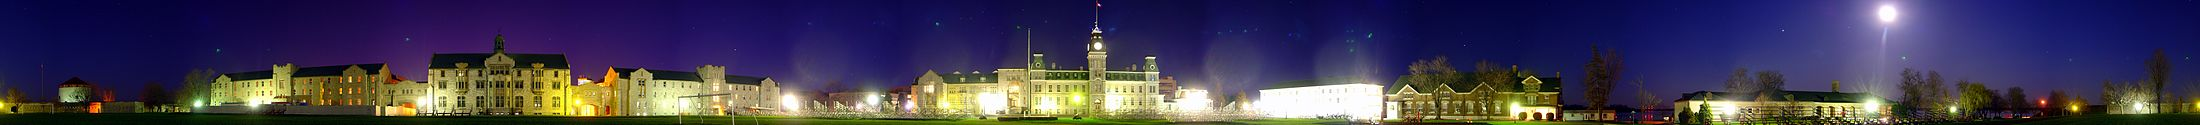 College Militaire Royal du Canada - Panorama Central.jpg